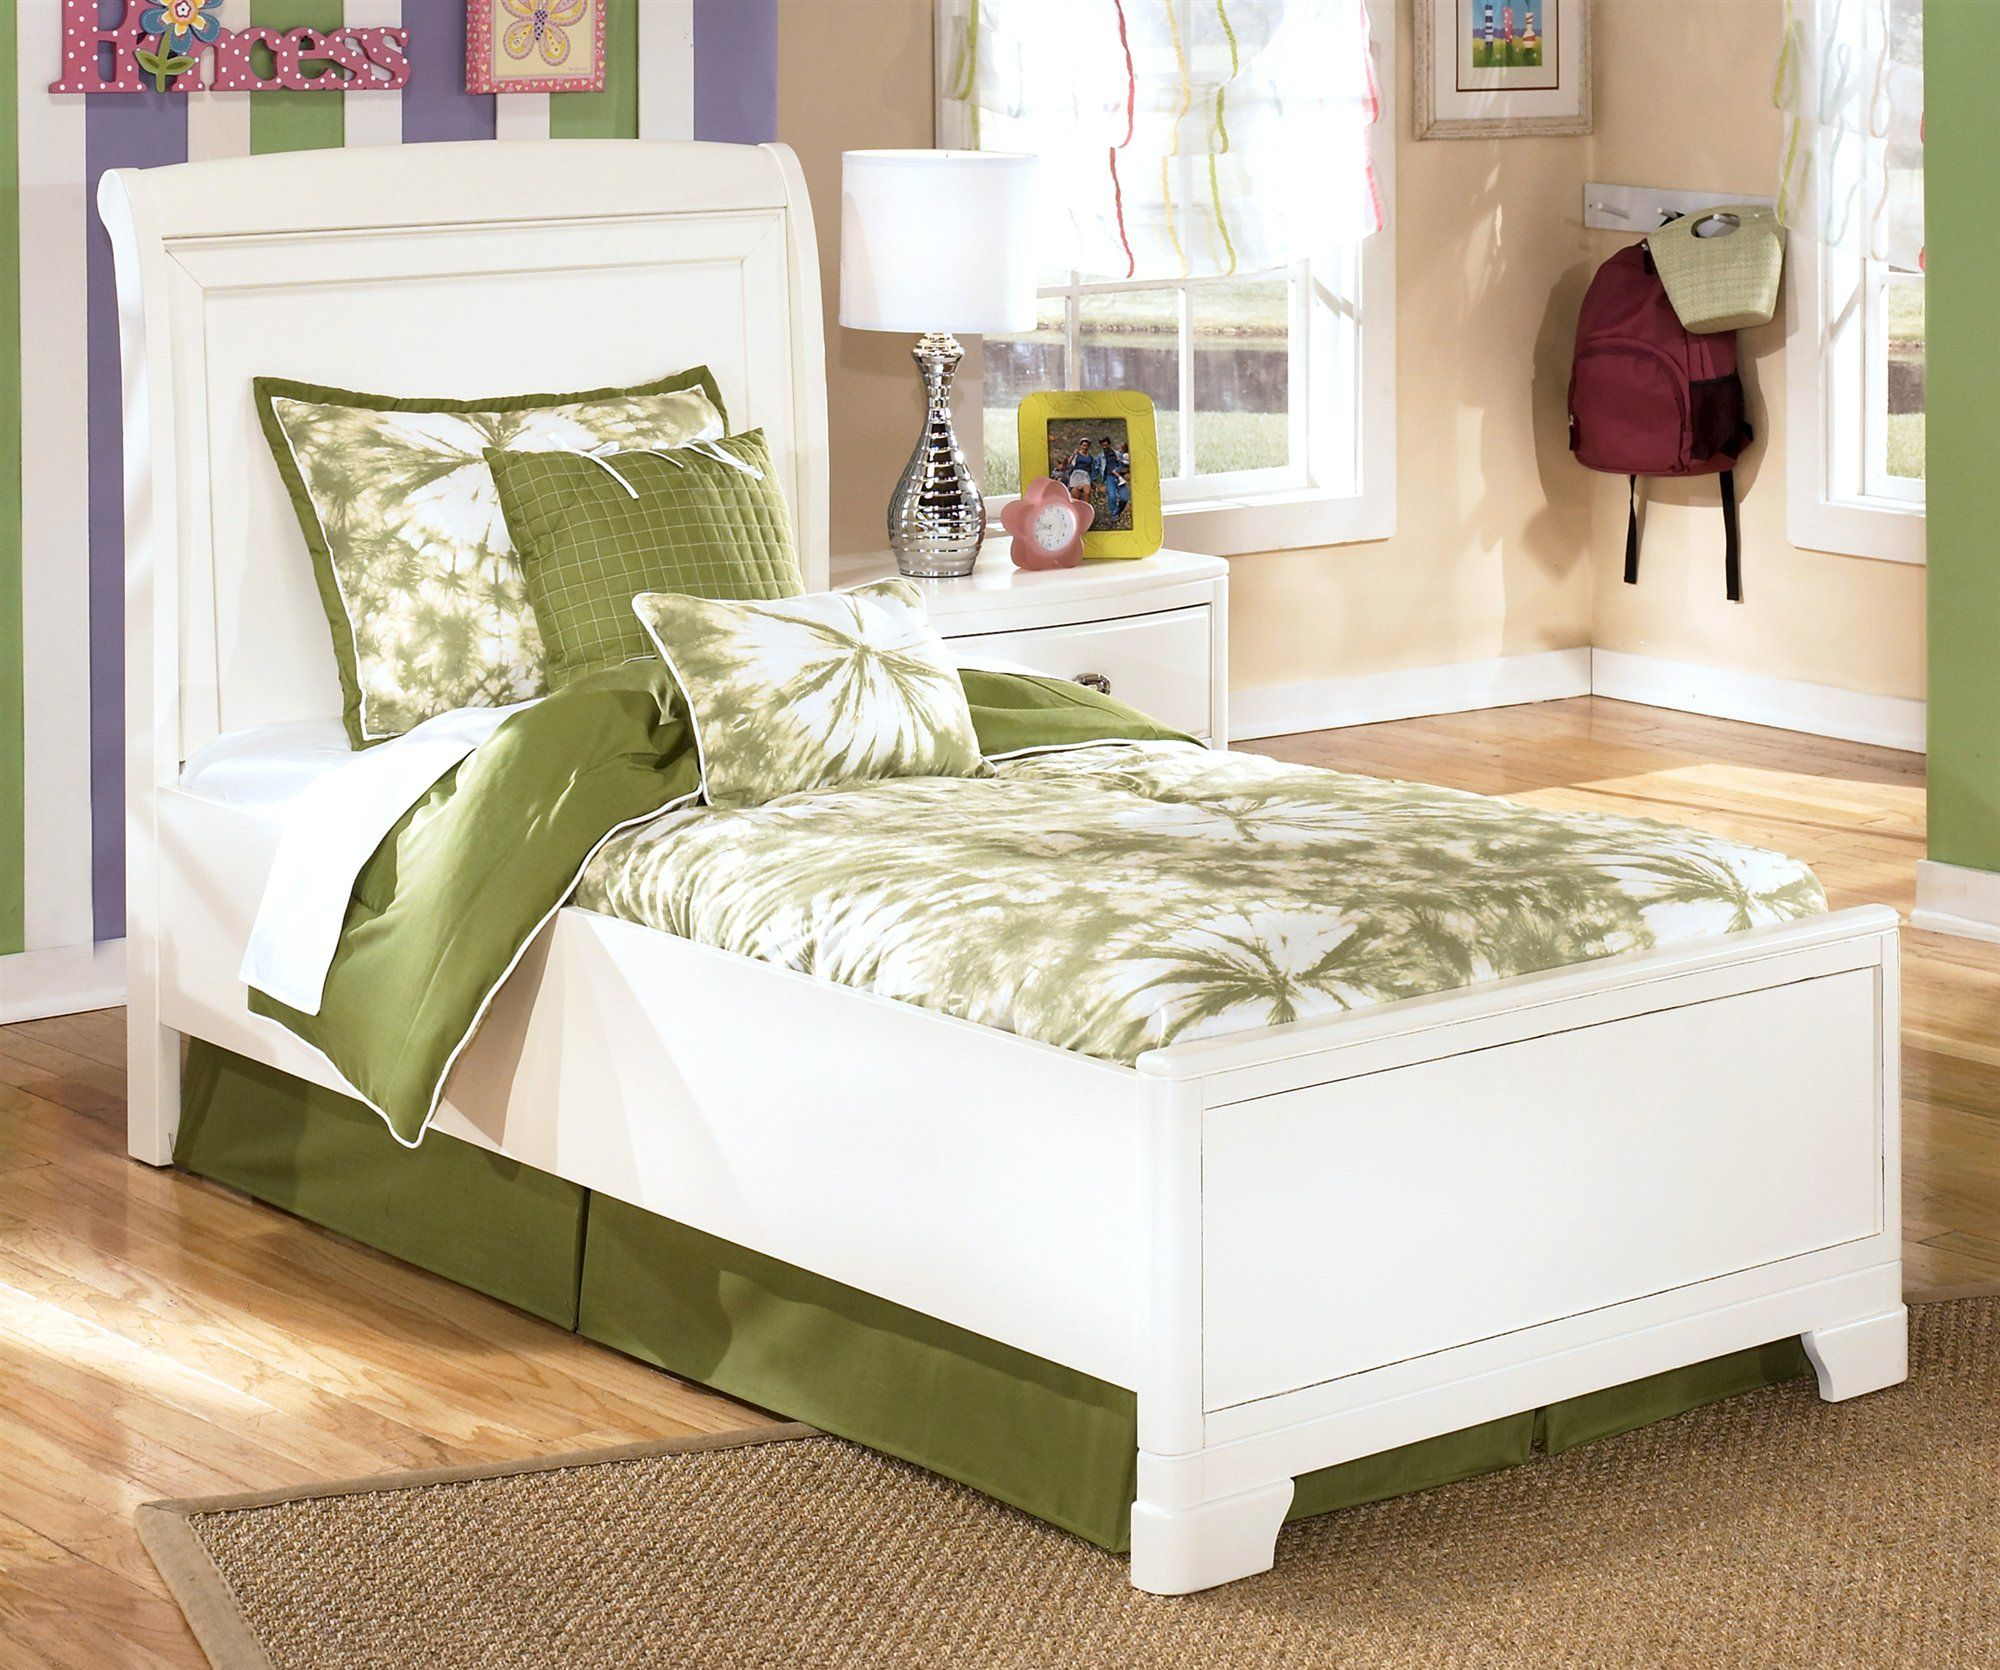 Cheap Signature Design by Ashley Twin Sleigh Bed in White